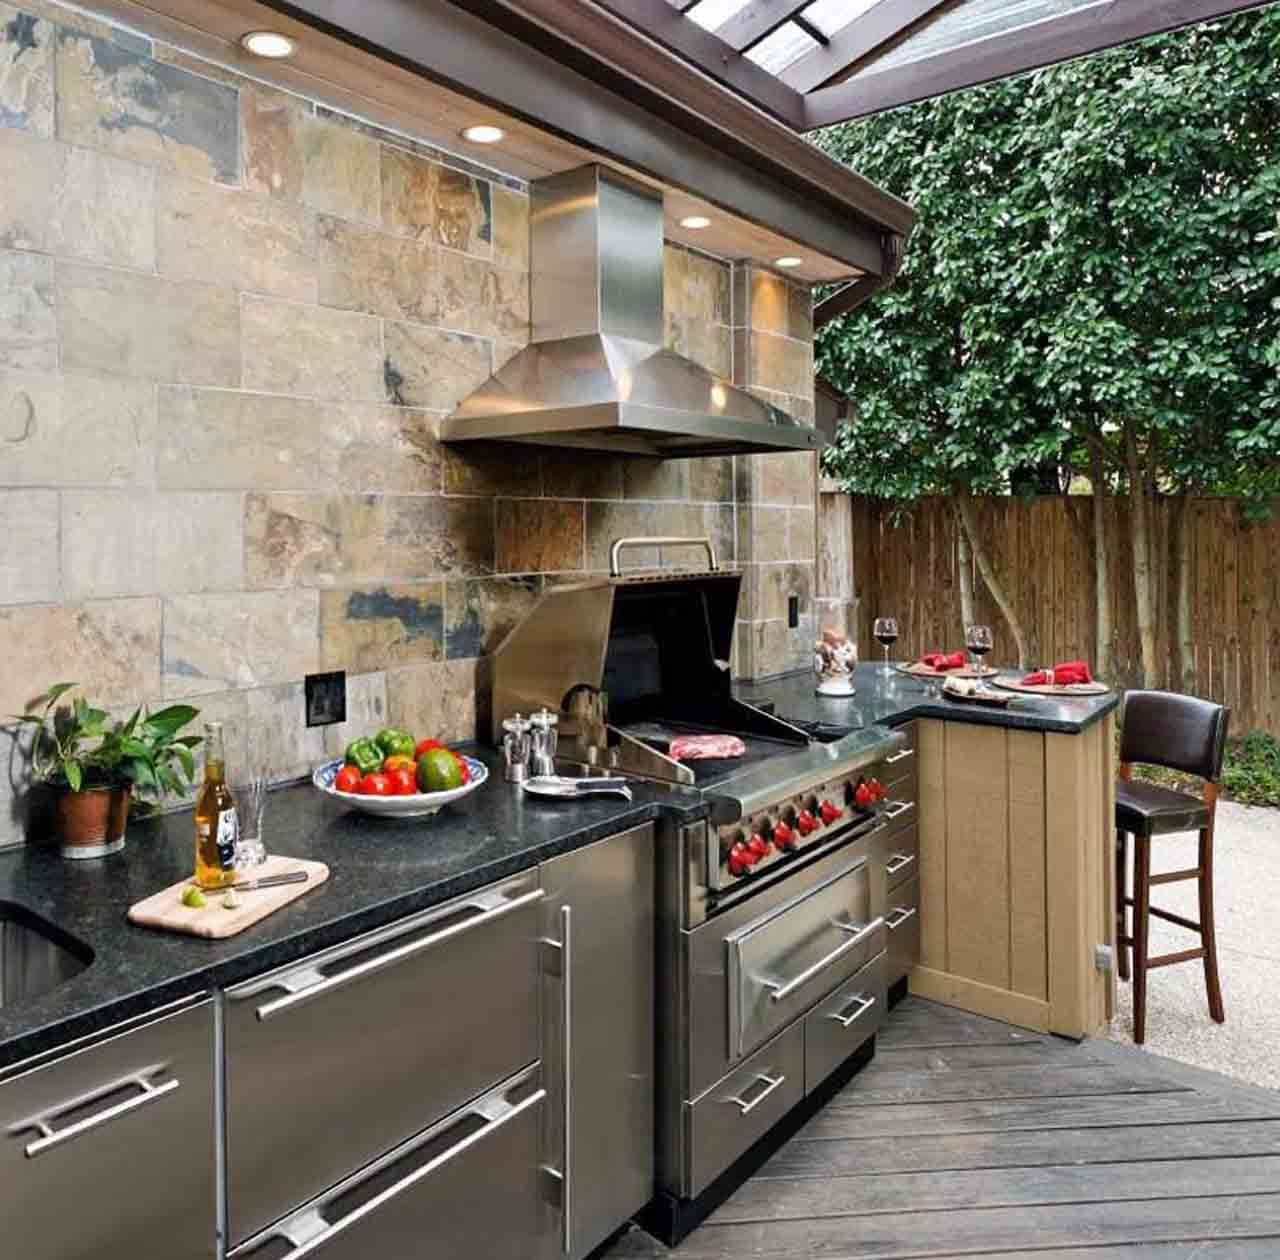 Design Your Own Exterior: Planning Your Own Outdoor Kitchens: Modern Outdoor Kitchen